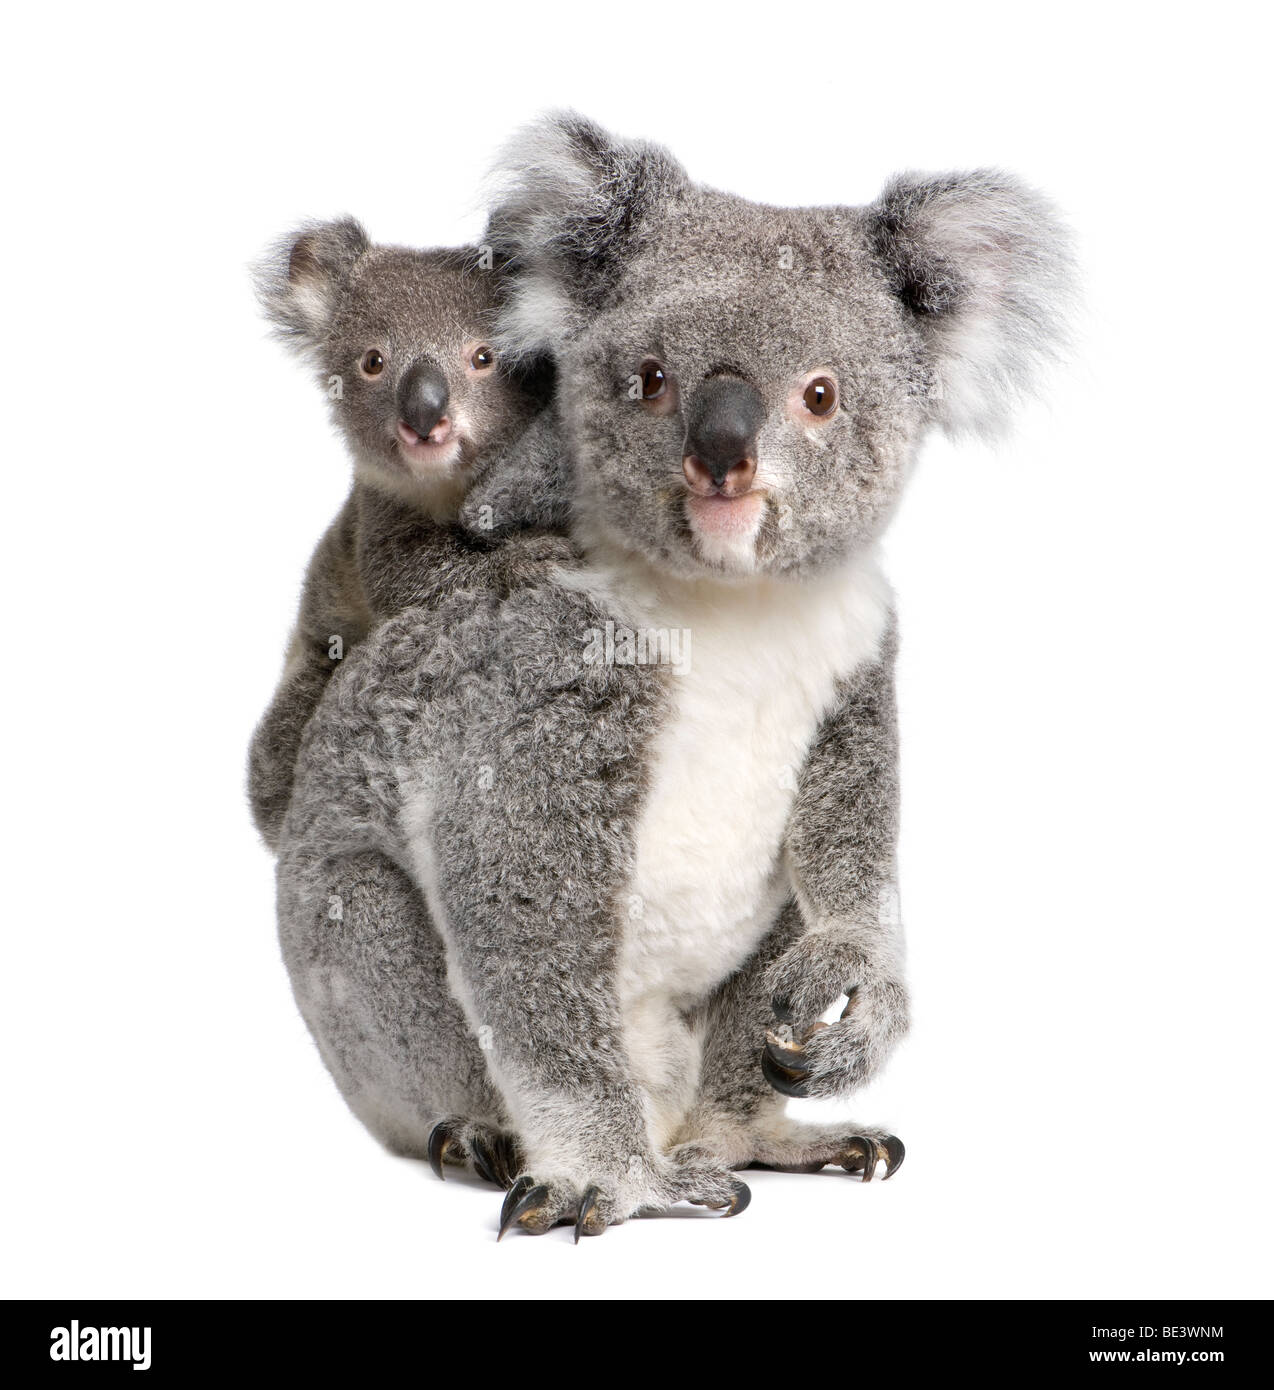 Portrait of Koala bears, 4 years old and 9 months old, Phascolarctos cinereus, in front of white background - Stock Image